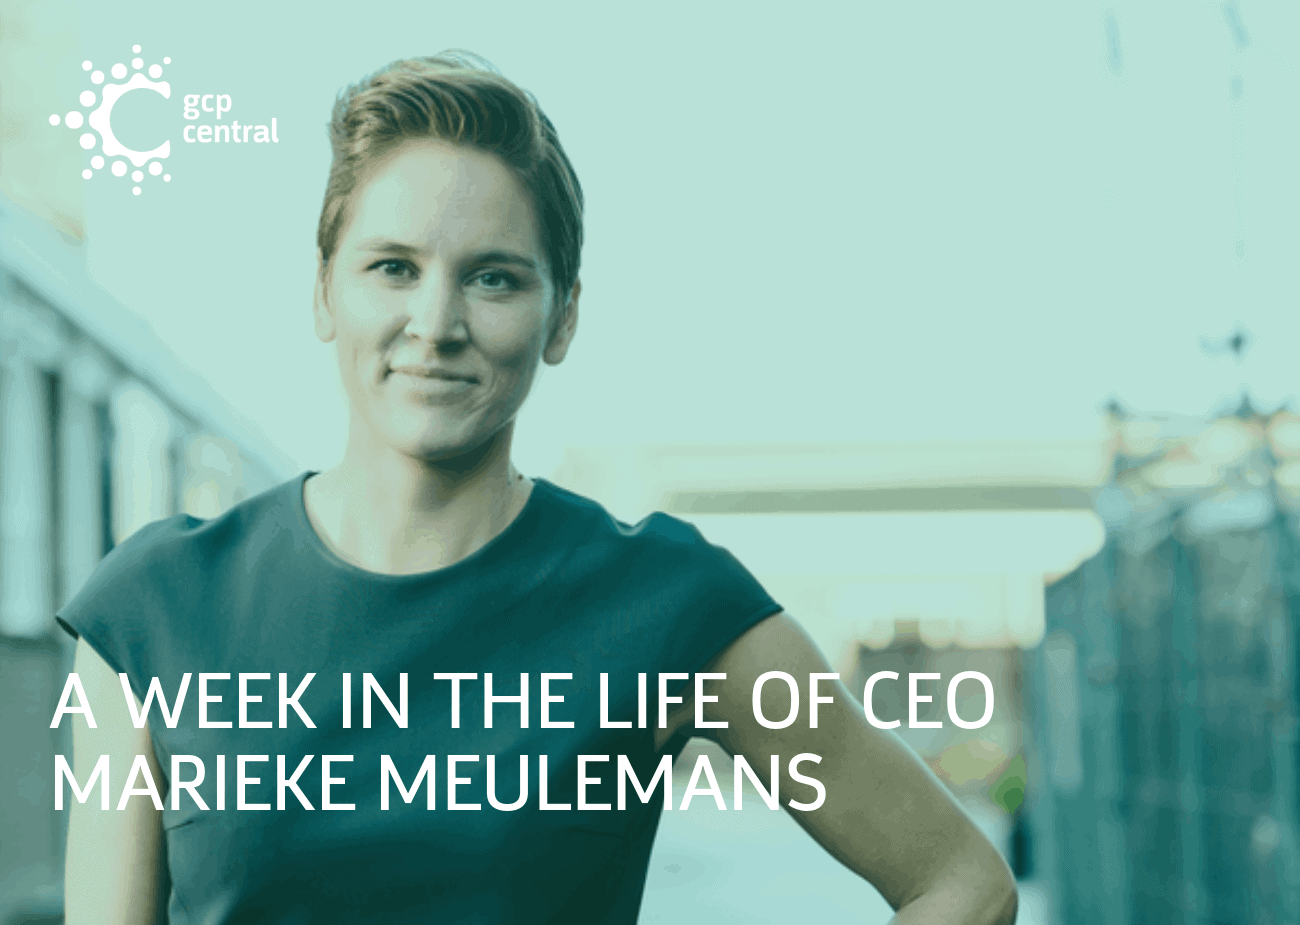 A week in the life of a CEO